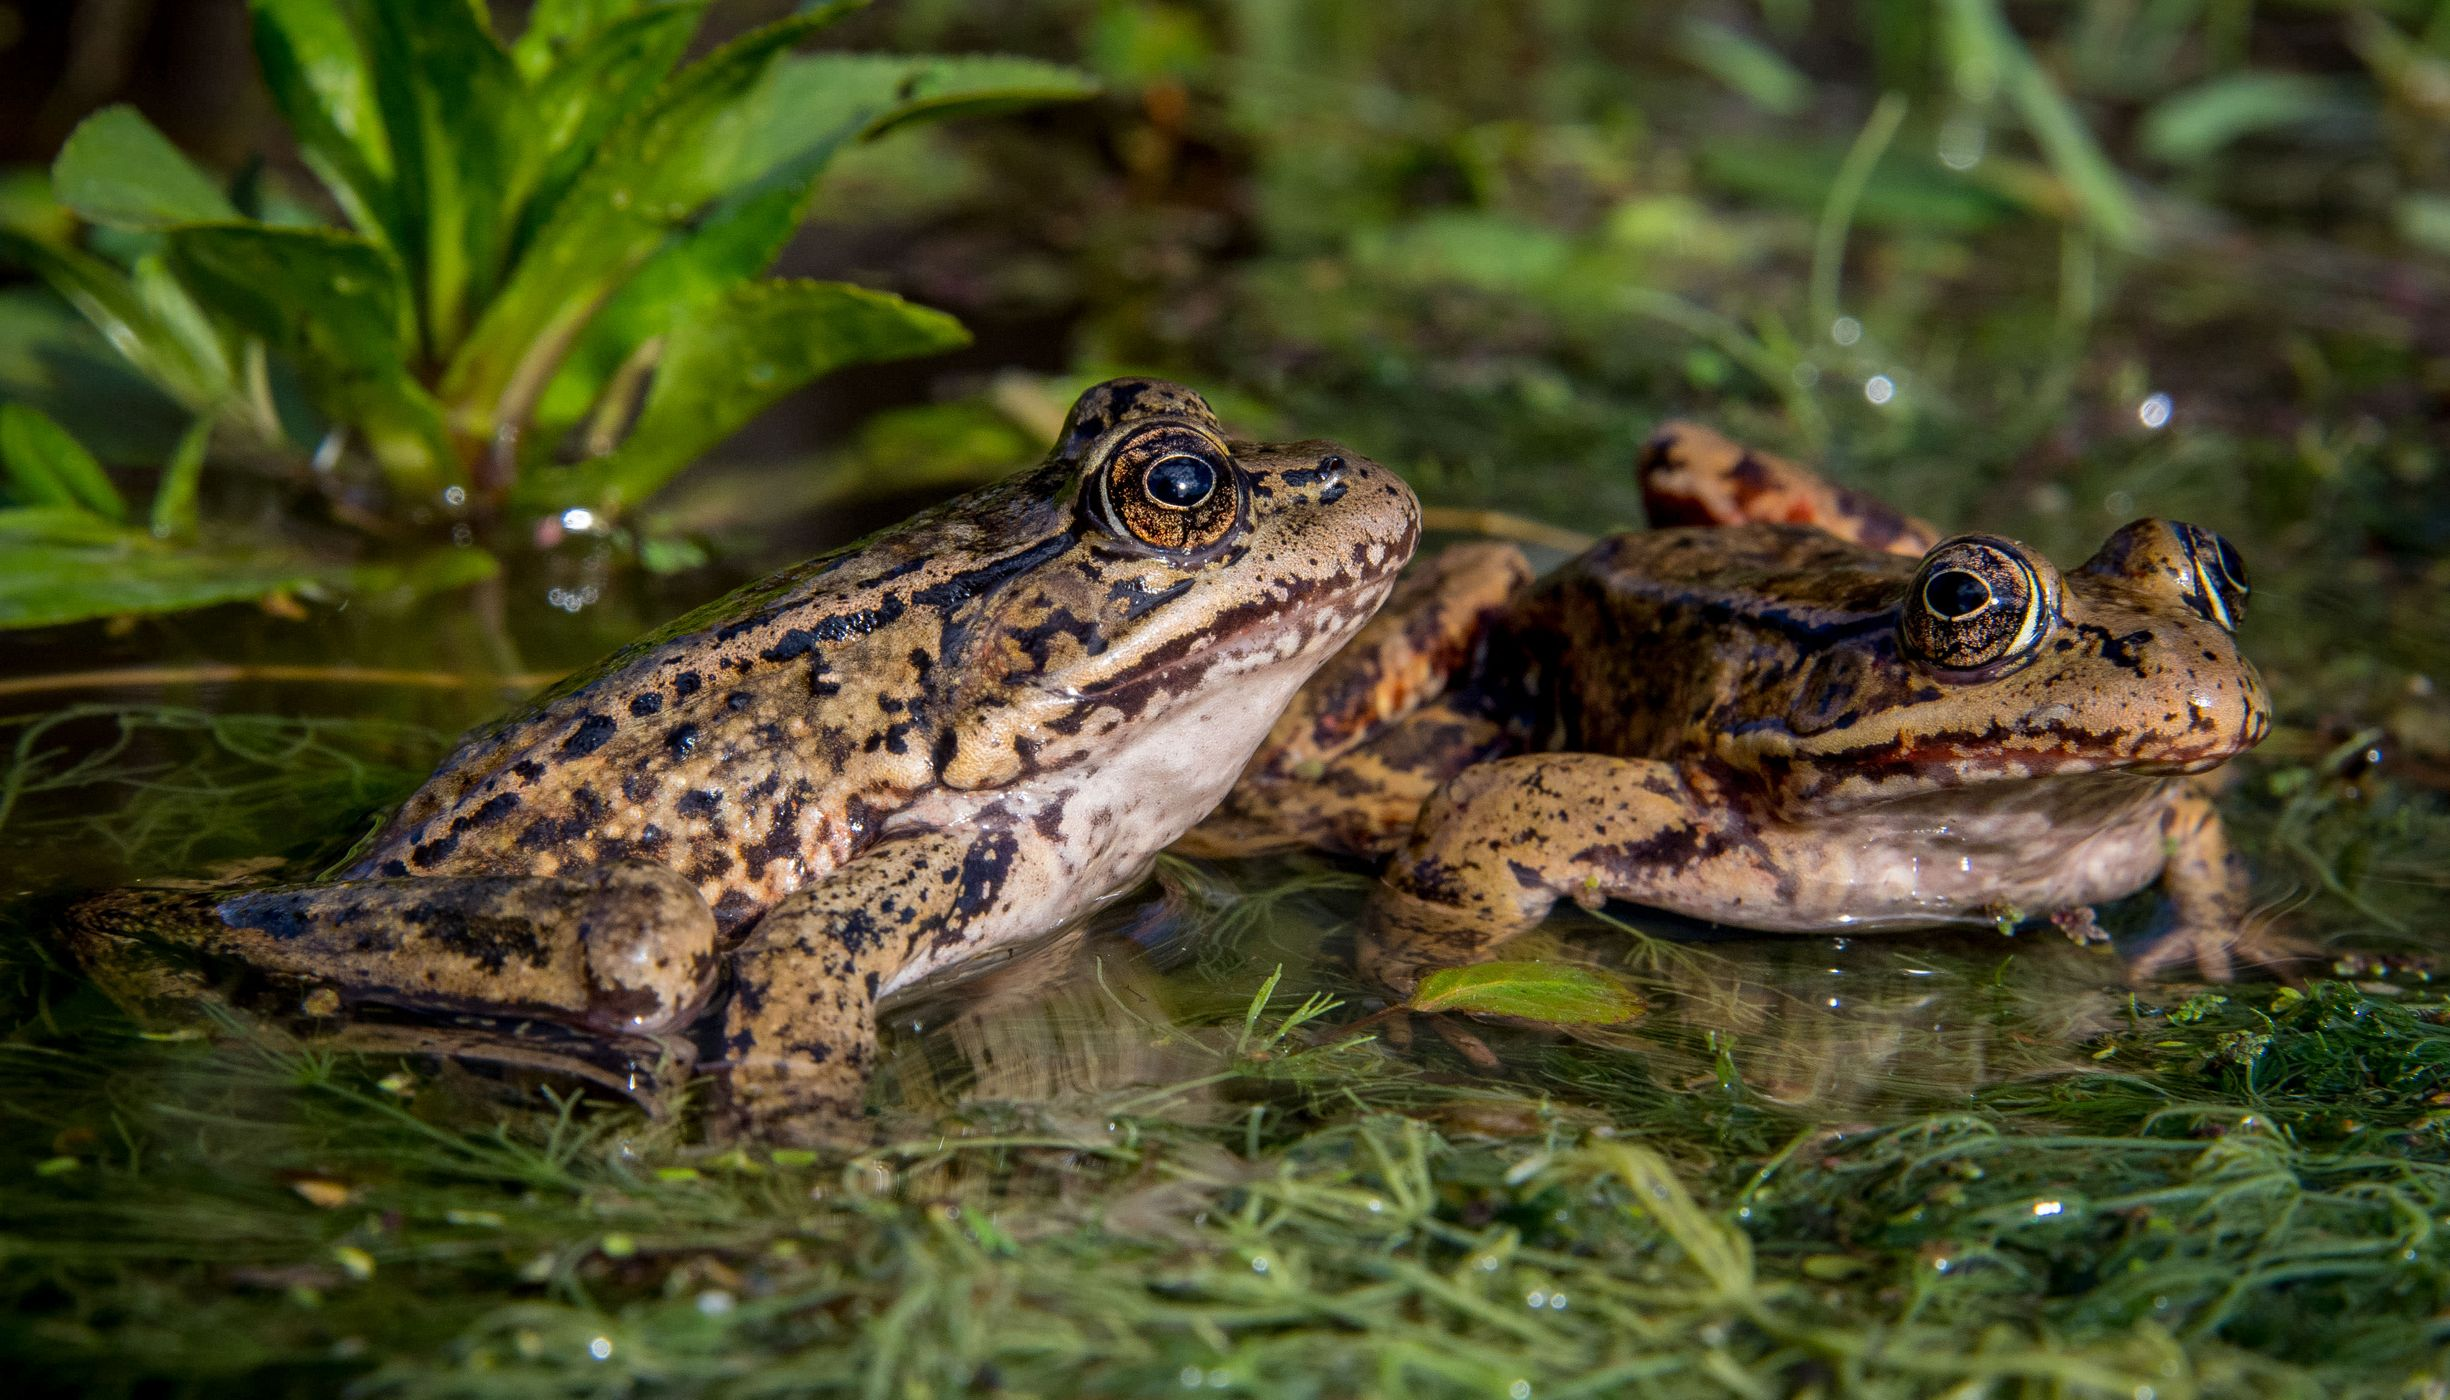 Two frogs in a small body of water.